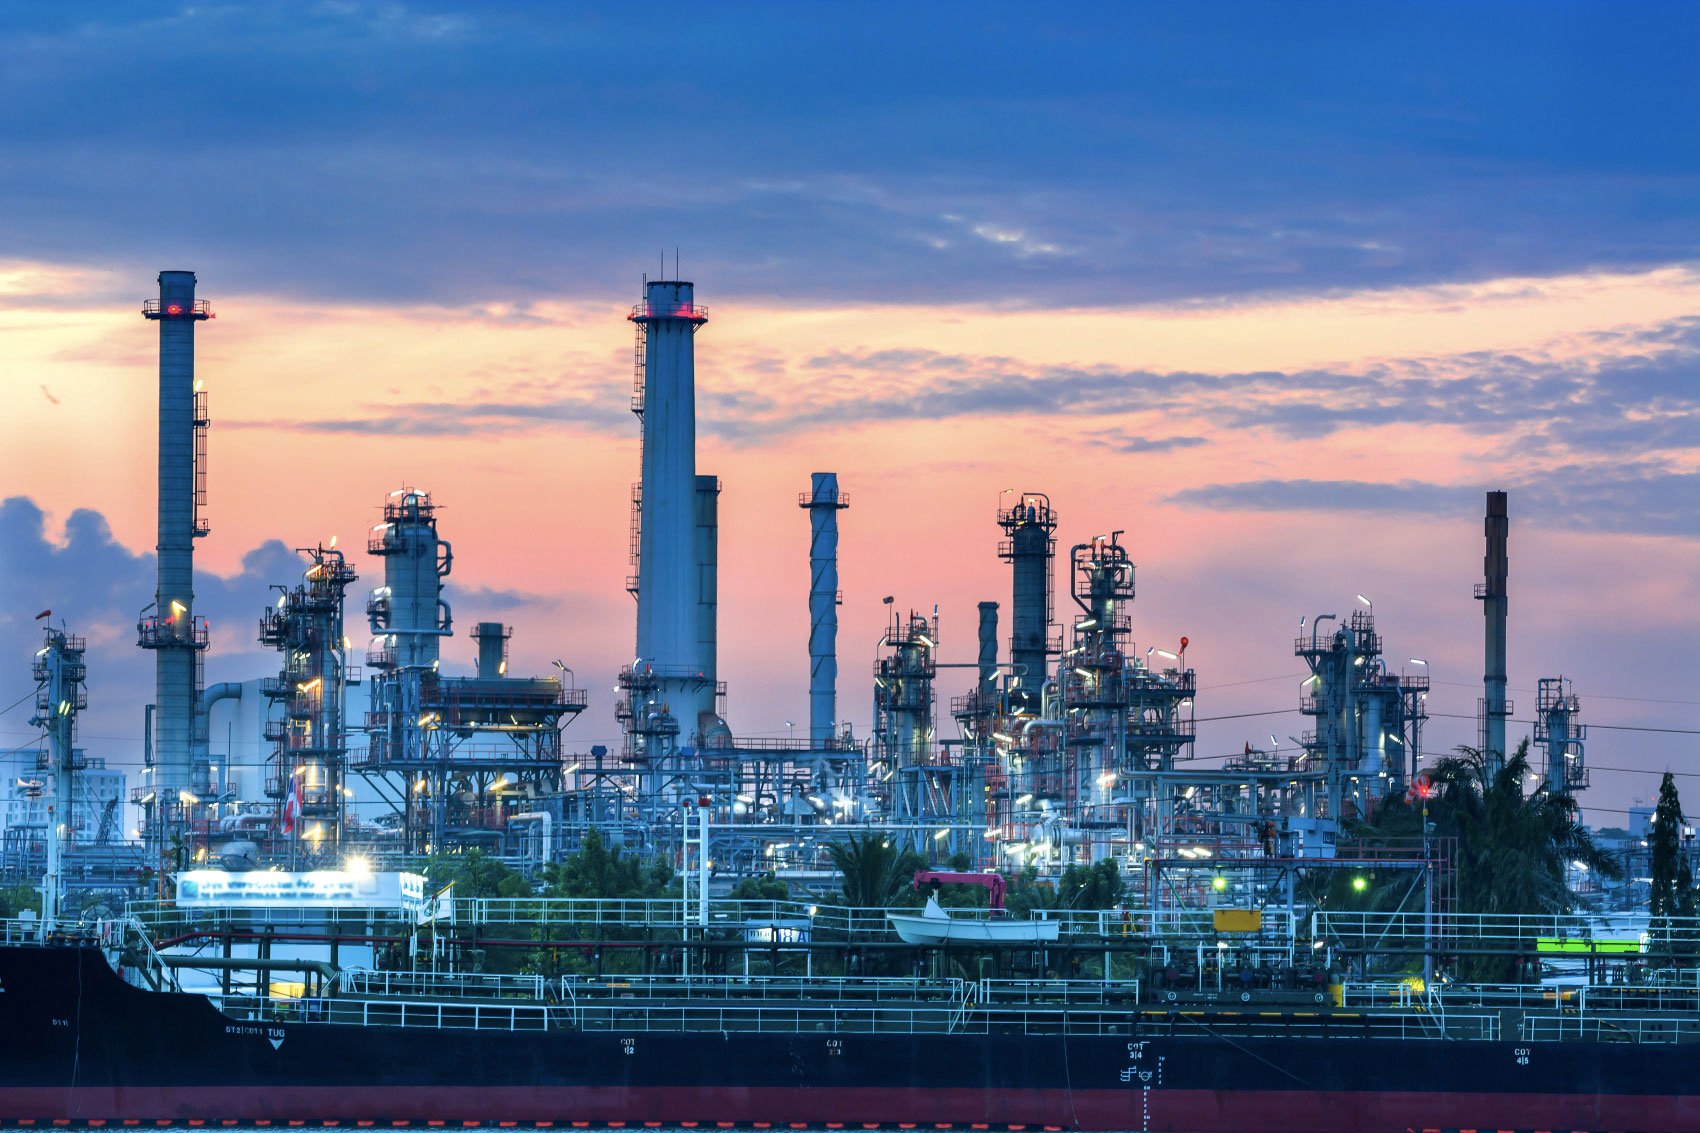 TPM Solutions Downstream Energy companies have invested billions of dollars in assets that convert raw crude oil and natural gas into a wide range of usable fuels and petrochemical products, and TPM Solutions helps clients maximize the value of these assets